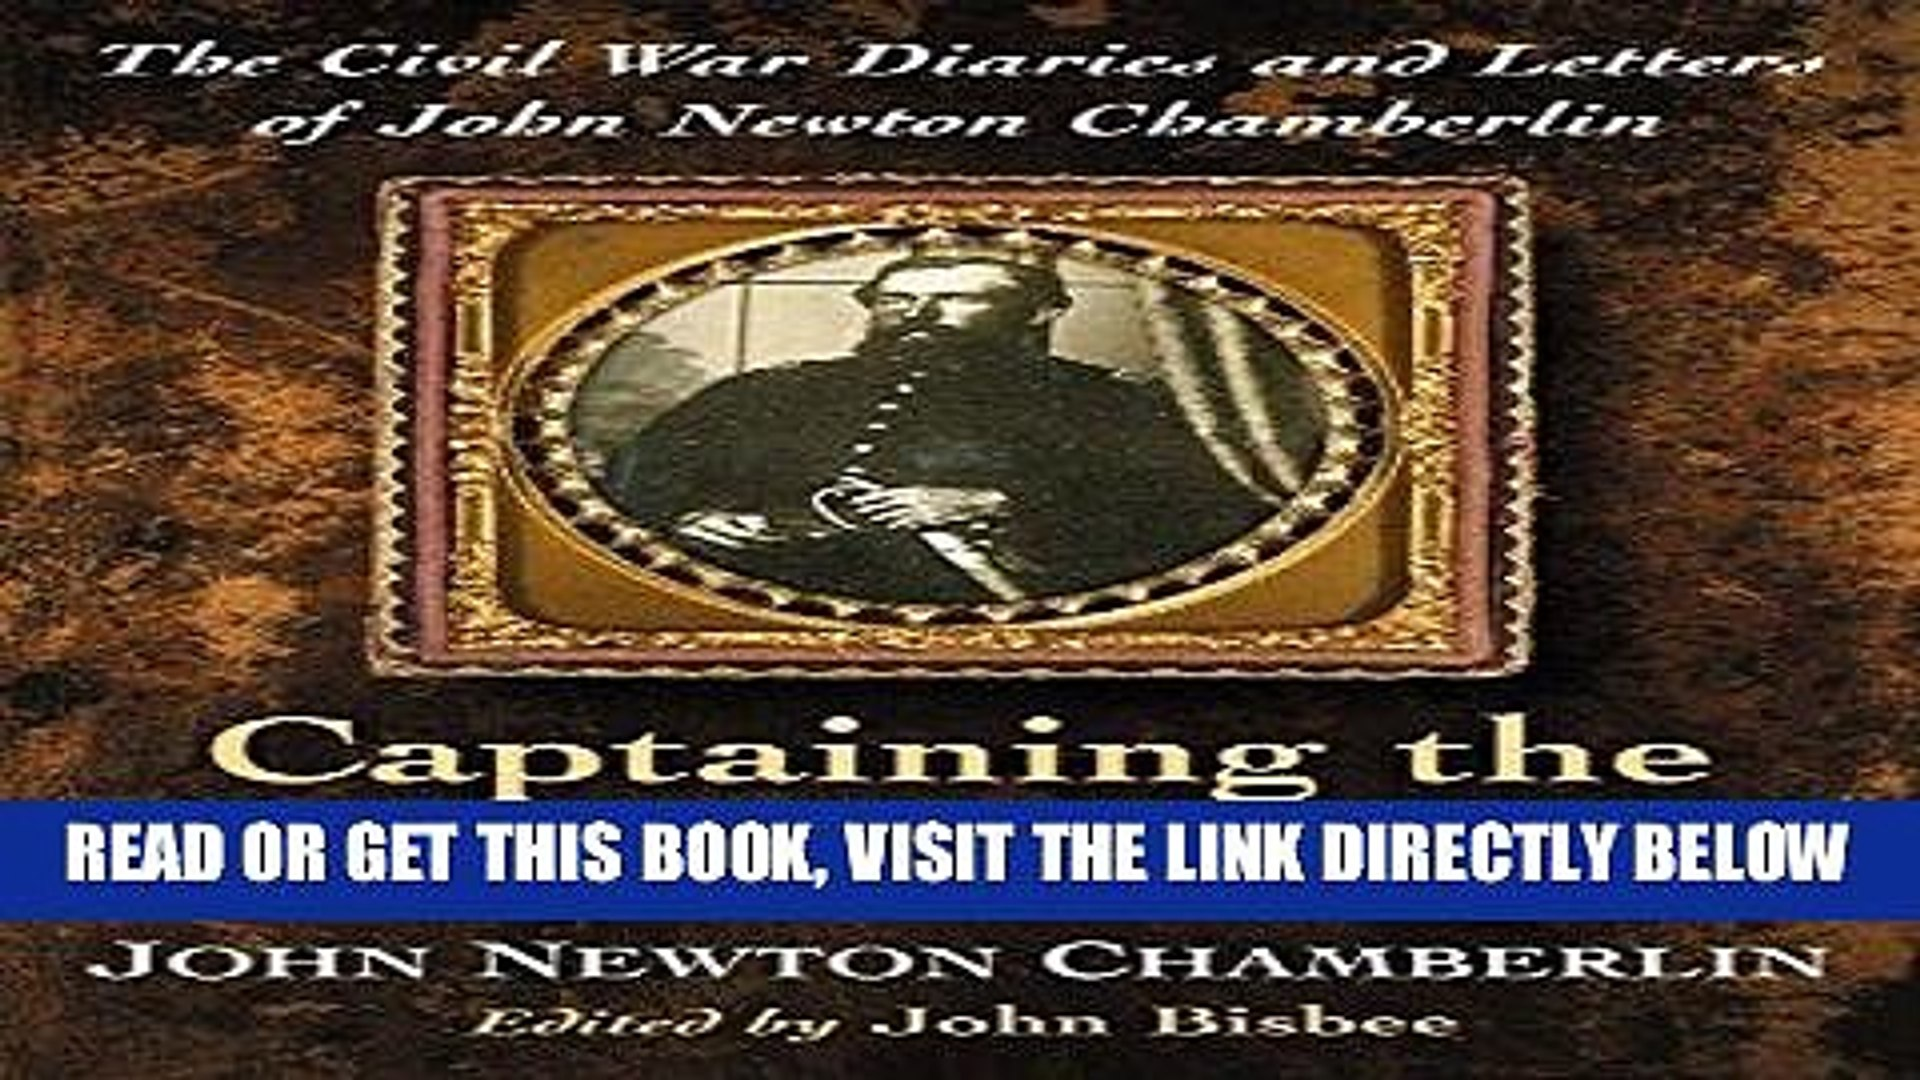 [PDF] Captaining the Corps d Afrique: The Civil War Diaries and Letters of John Newton Chamberlin